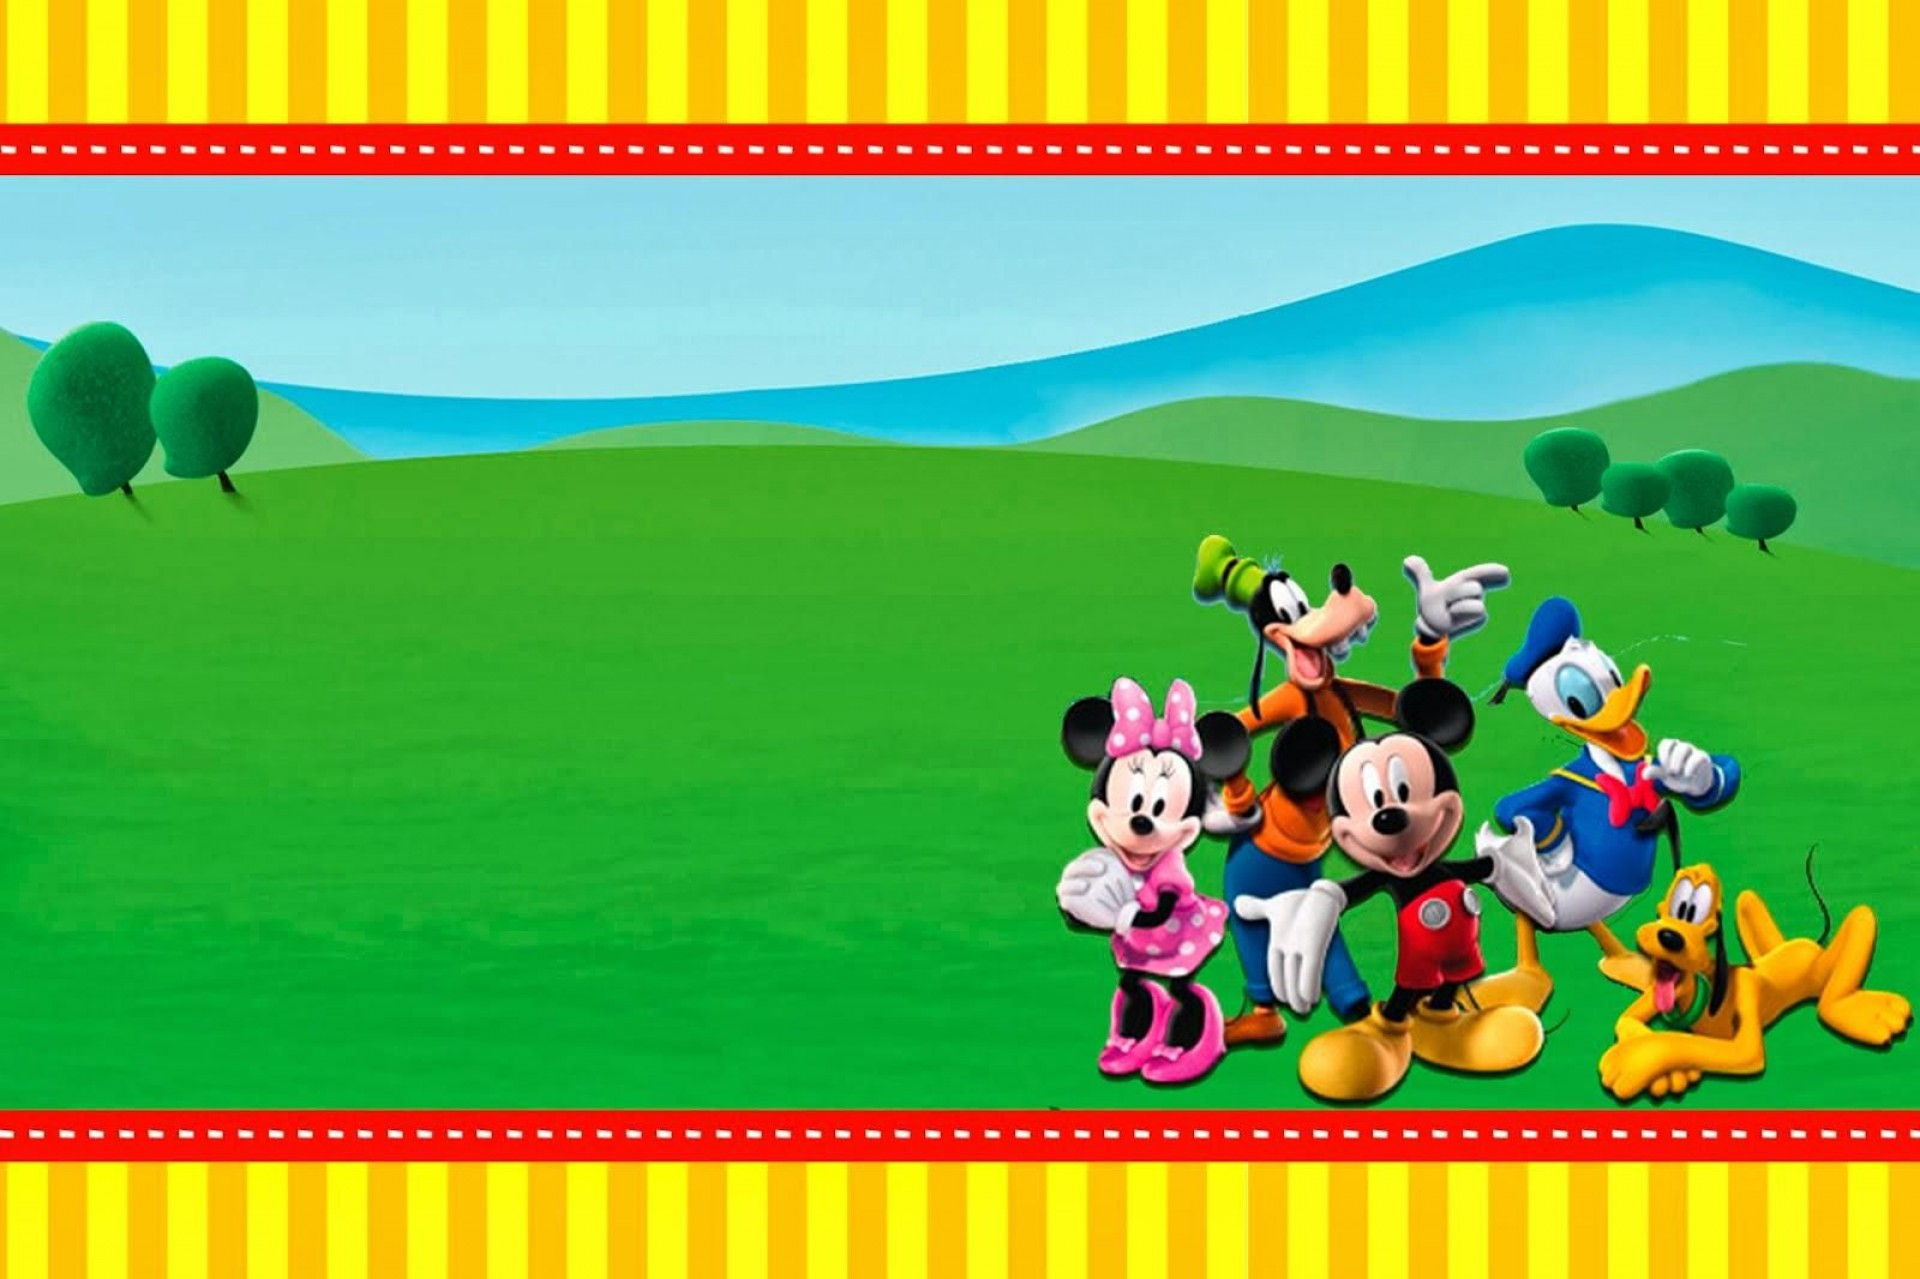 009 Excellent Mickey Mouse Invitation Template High Def  Free Diy 1st Birthday Baby Download1920